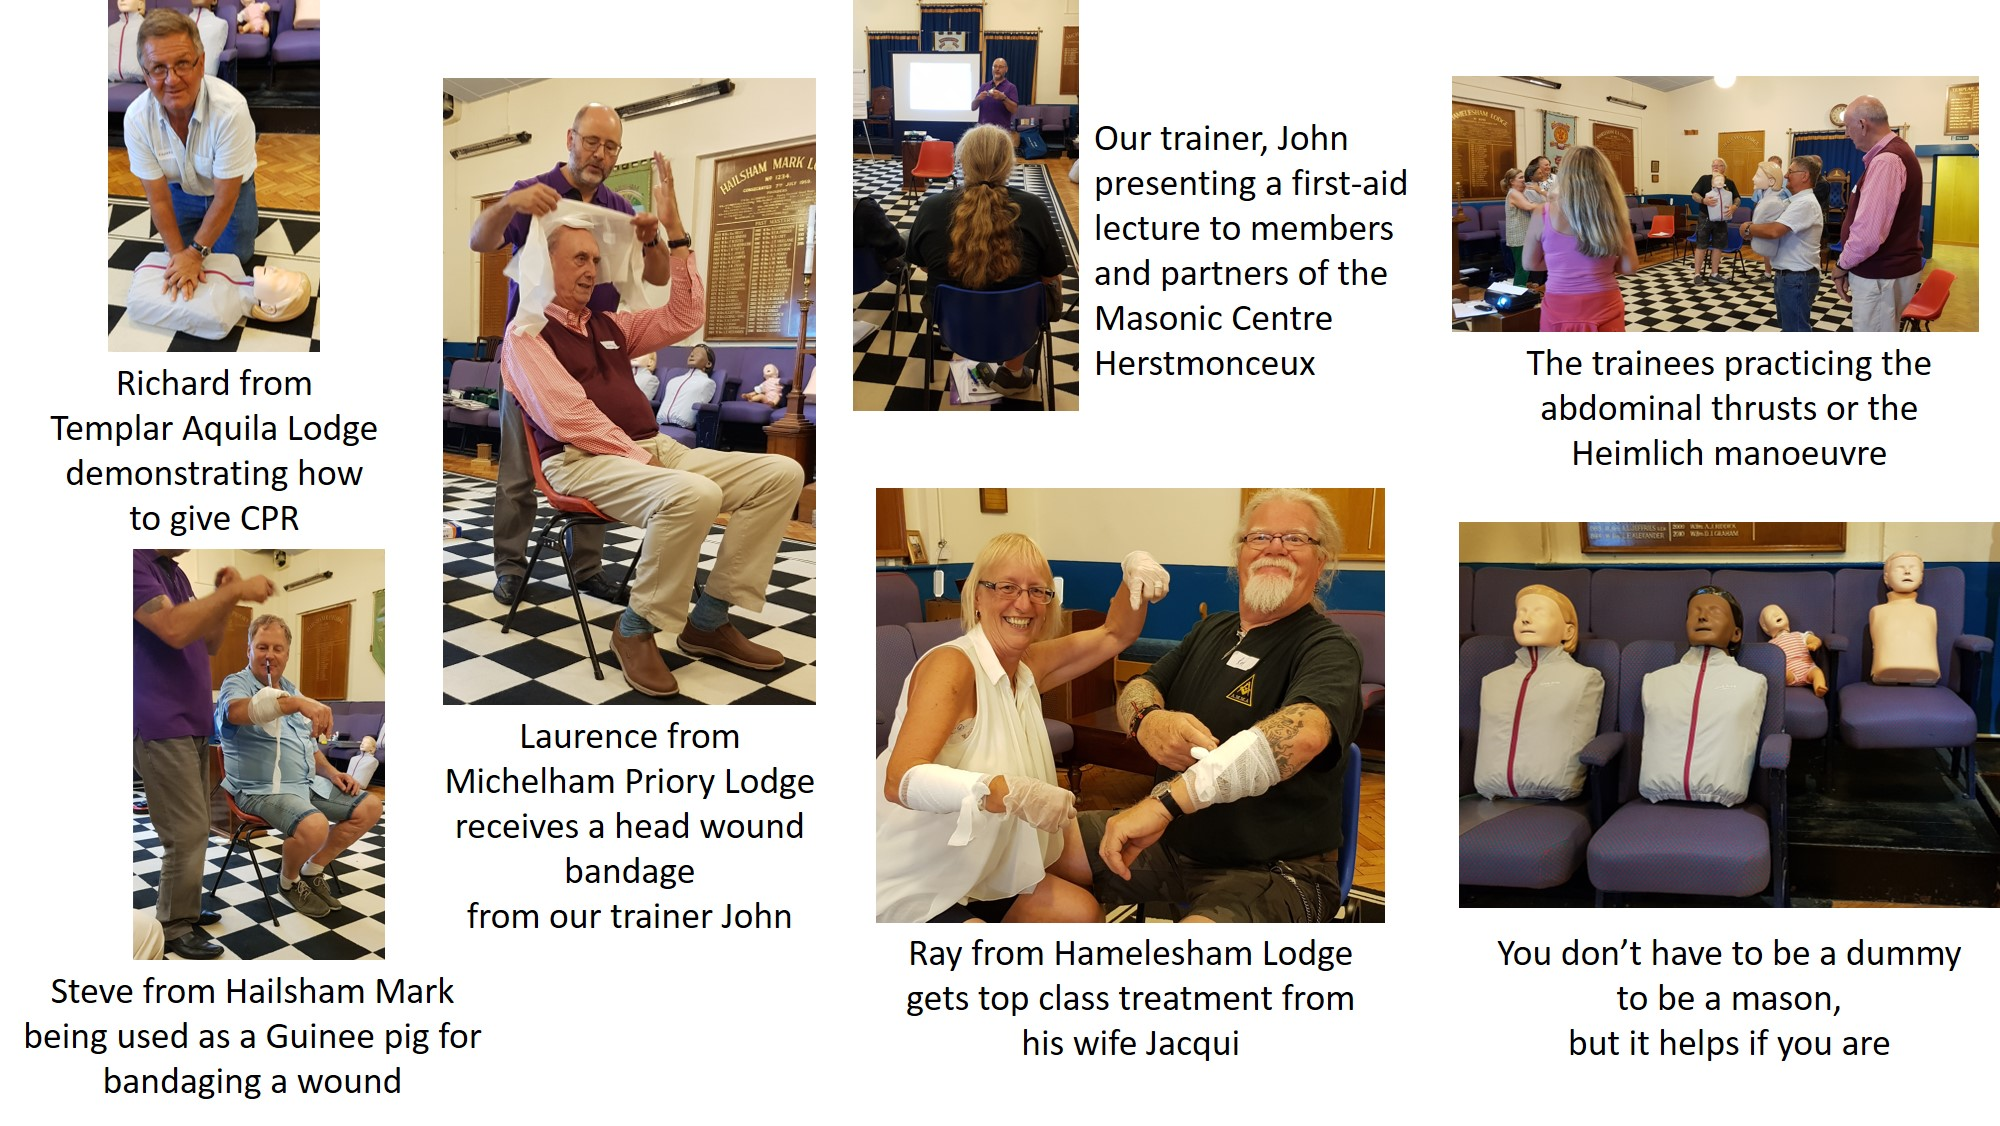 The members and partners taking part in the first aid training course held at the Herstmonceux Masonic Centre